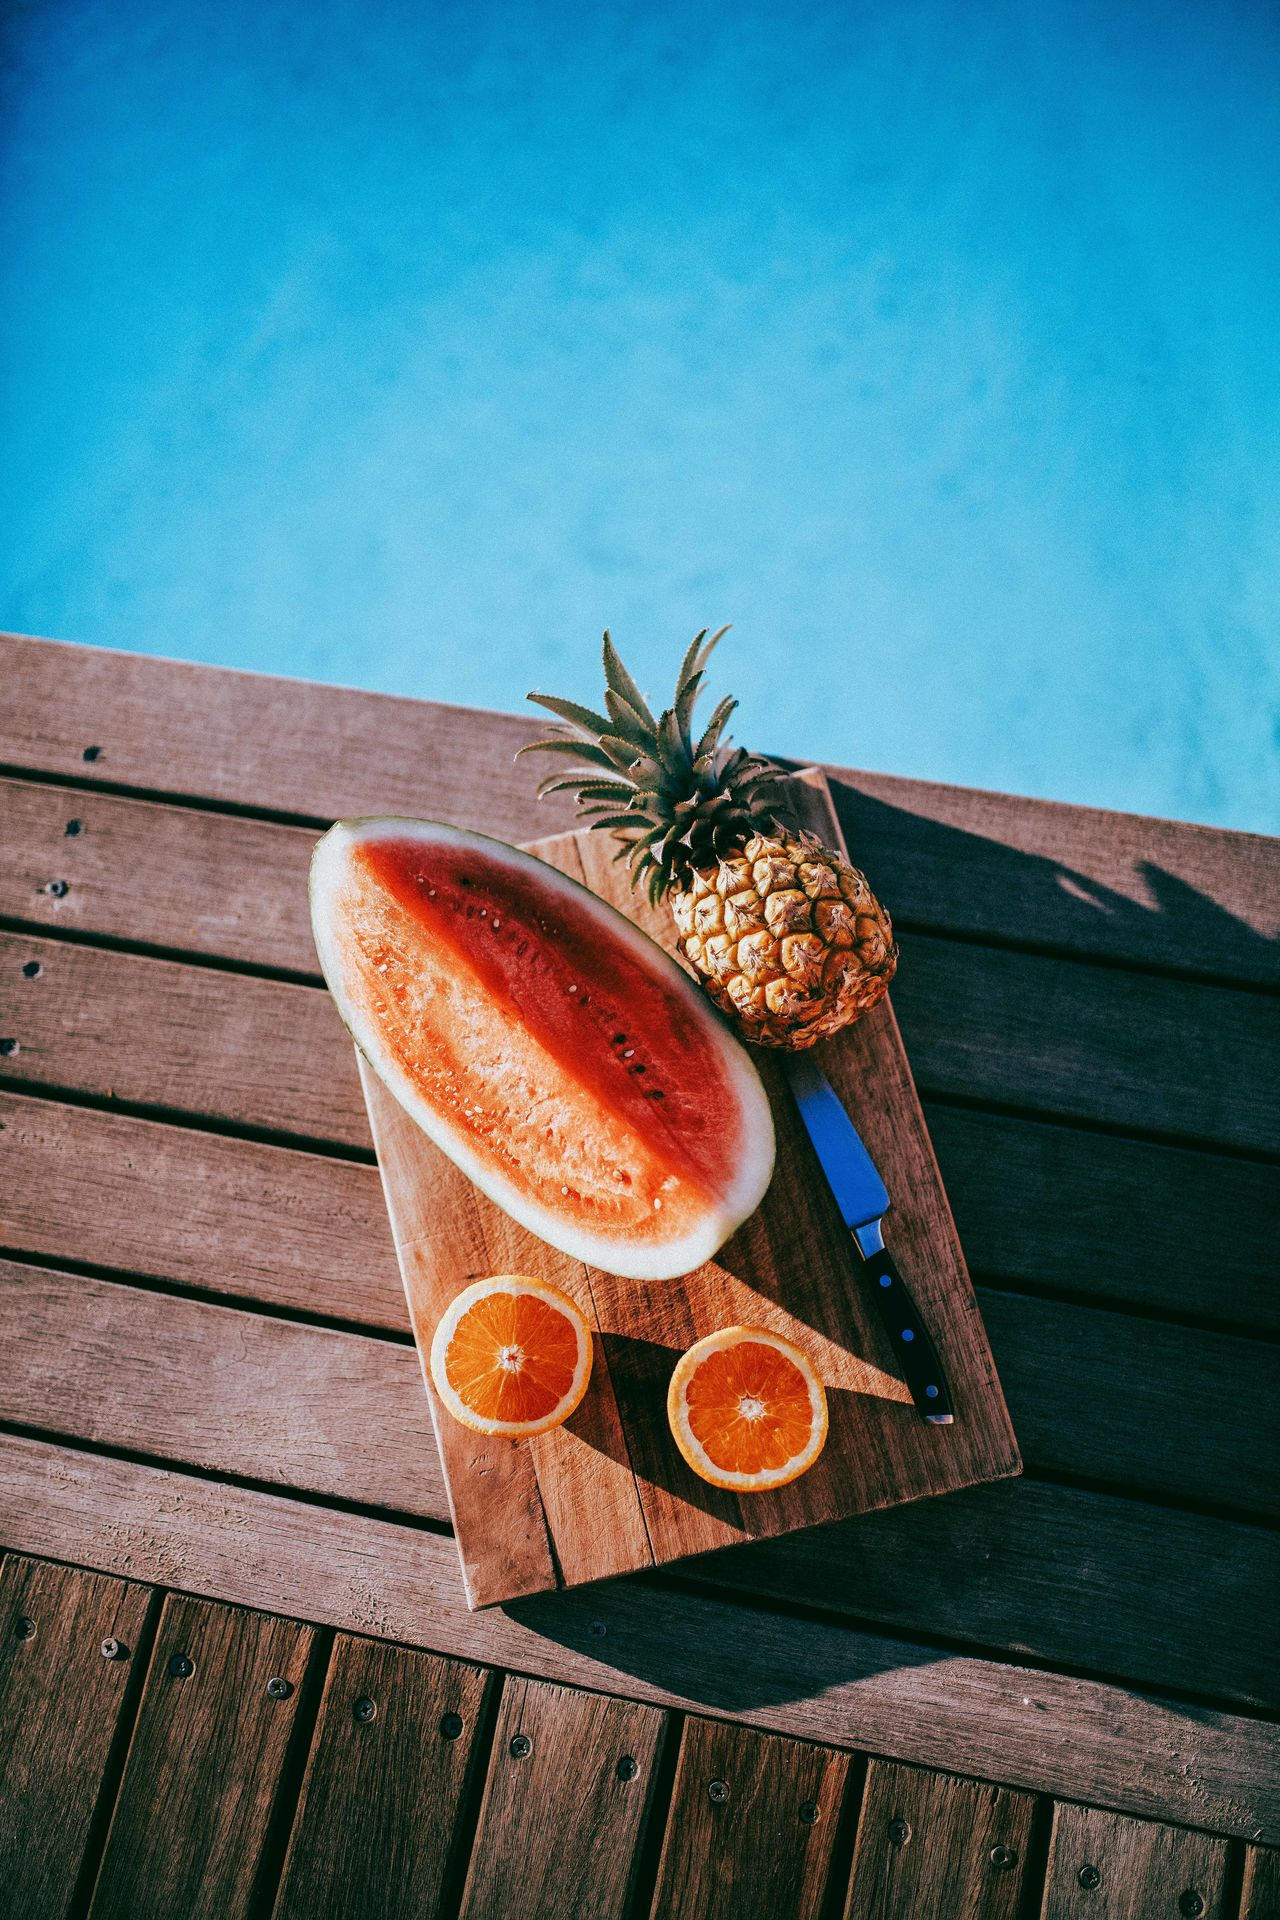 Day Food Food And Drink Freshness Fruit Healthy Eating Healthy Lifestyle Knife No People Oranges Pineapple Plate Platter Ready-to-eat Refreshment SLICE Watermelon Wood - Material